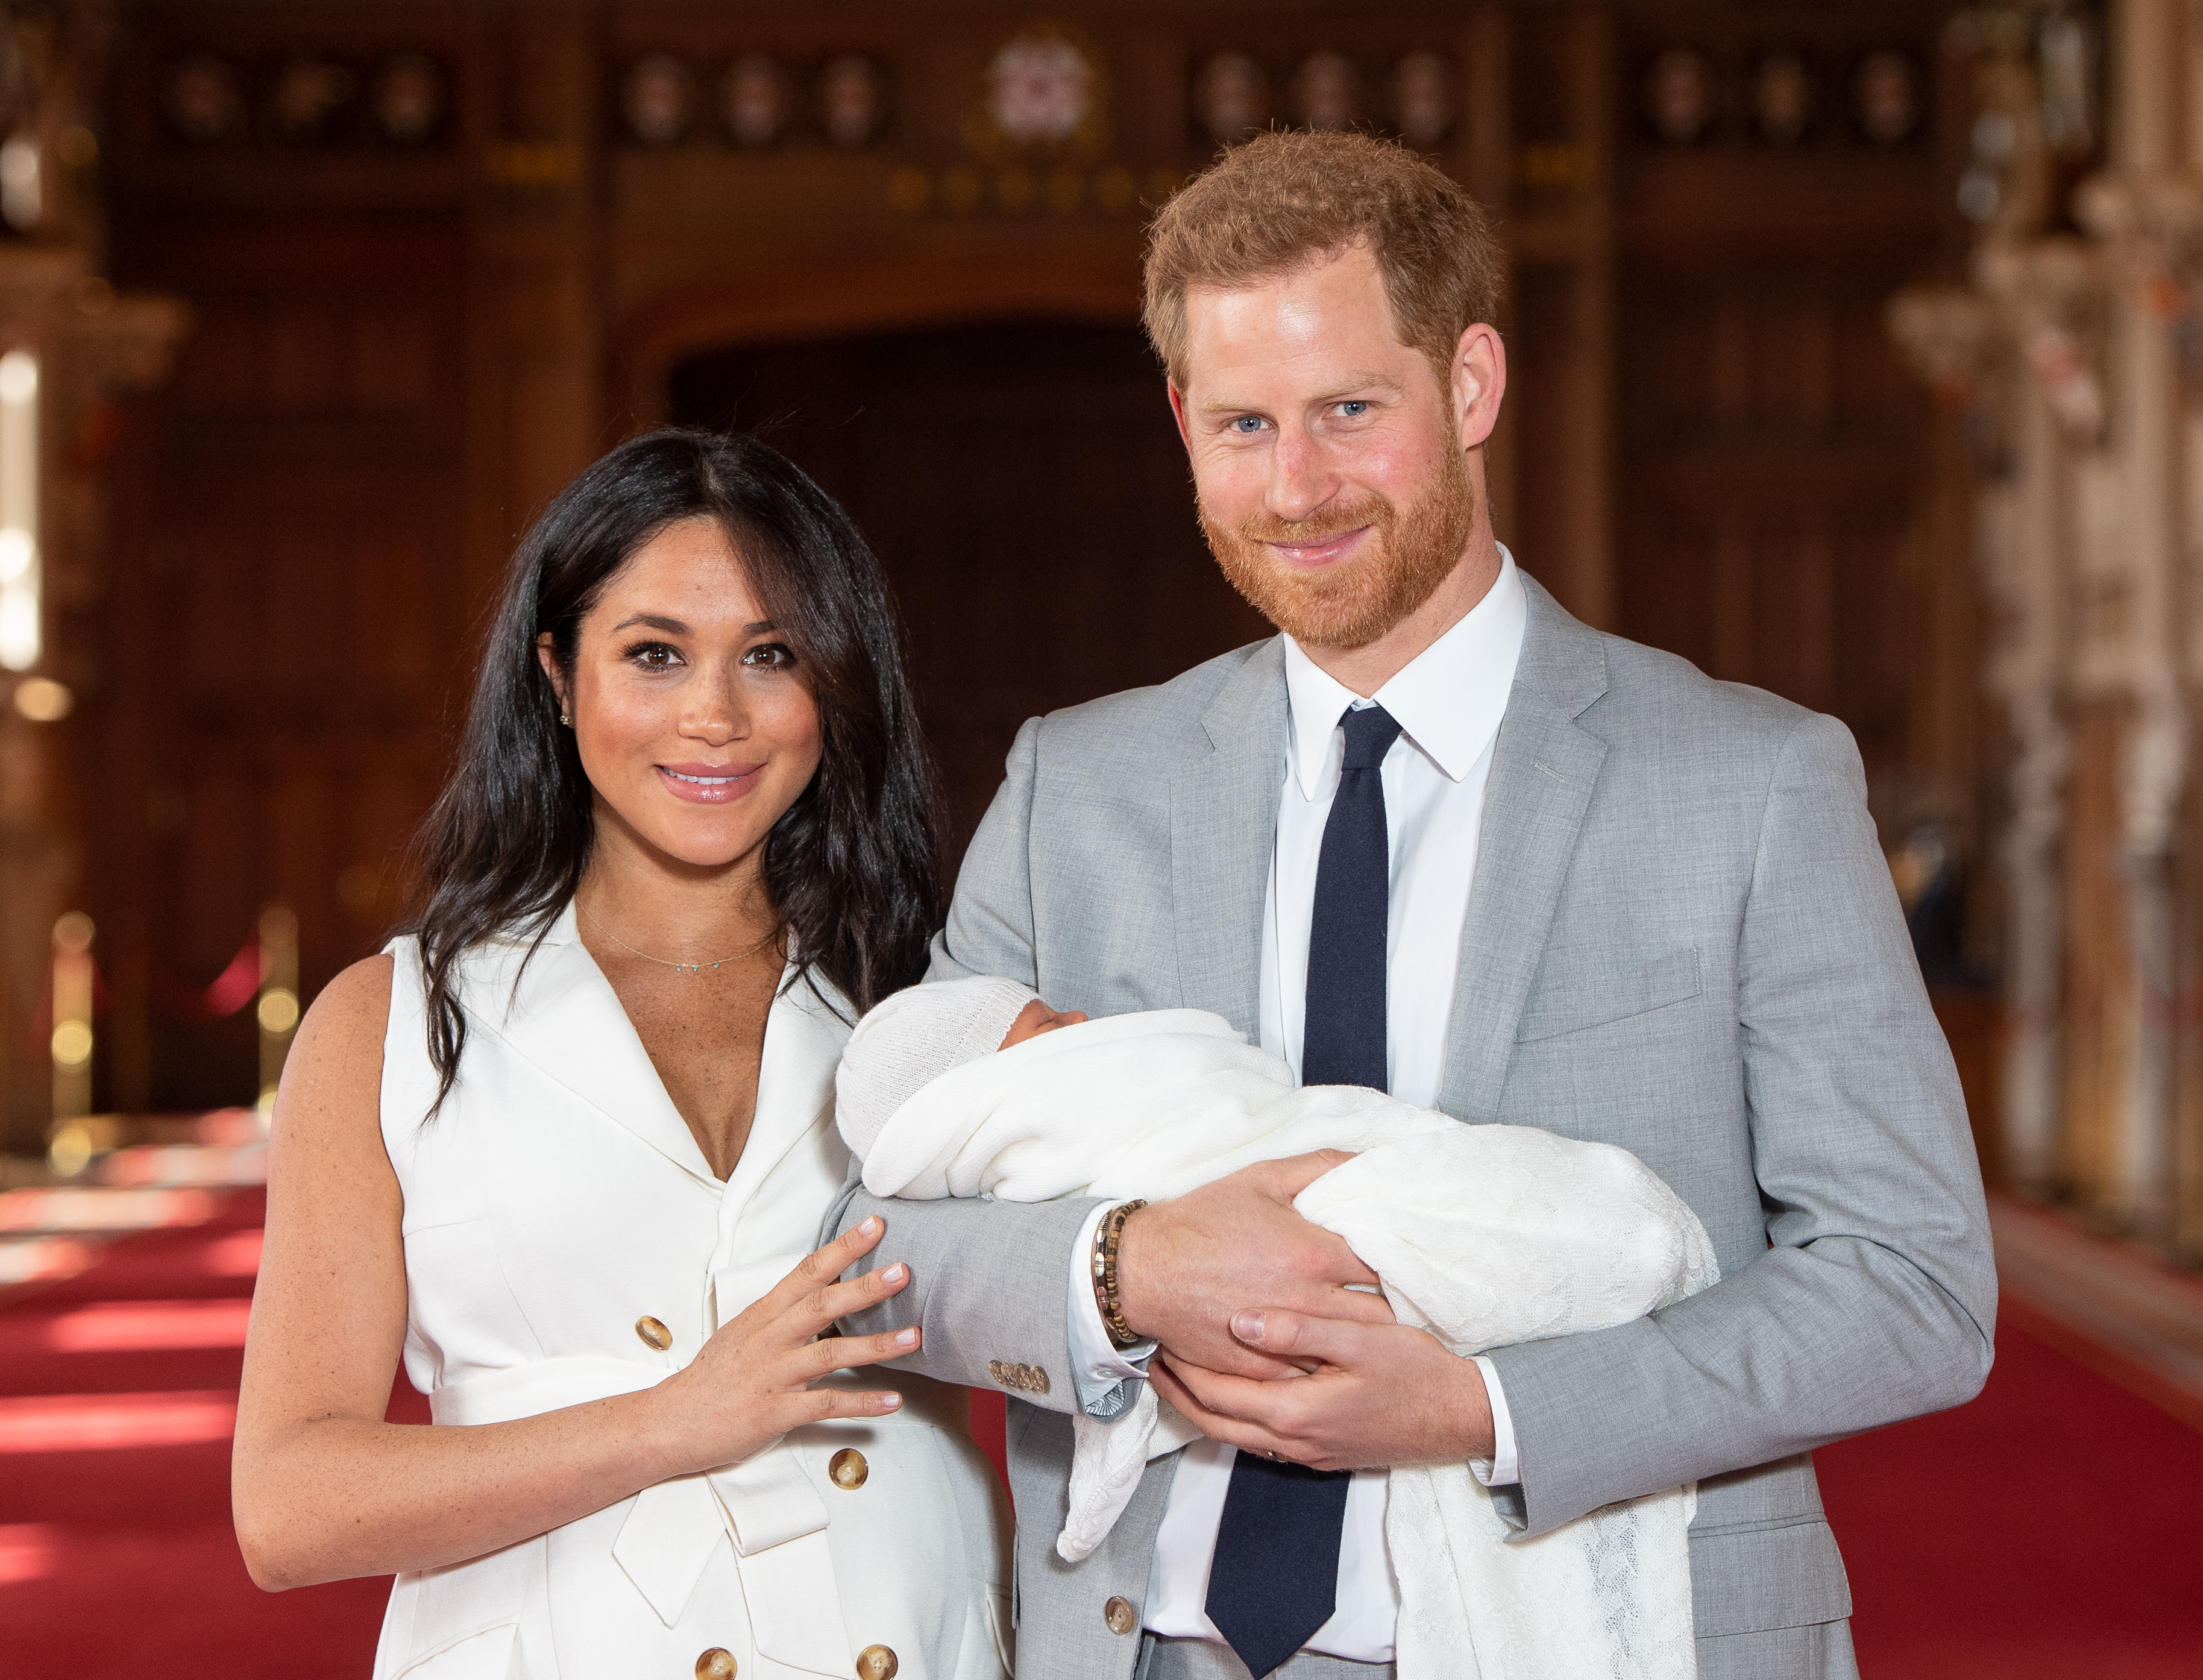 Meghan Markle and Prince Harry Chose a Sentimental Location for Baby Archie's Christening